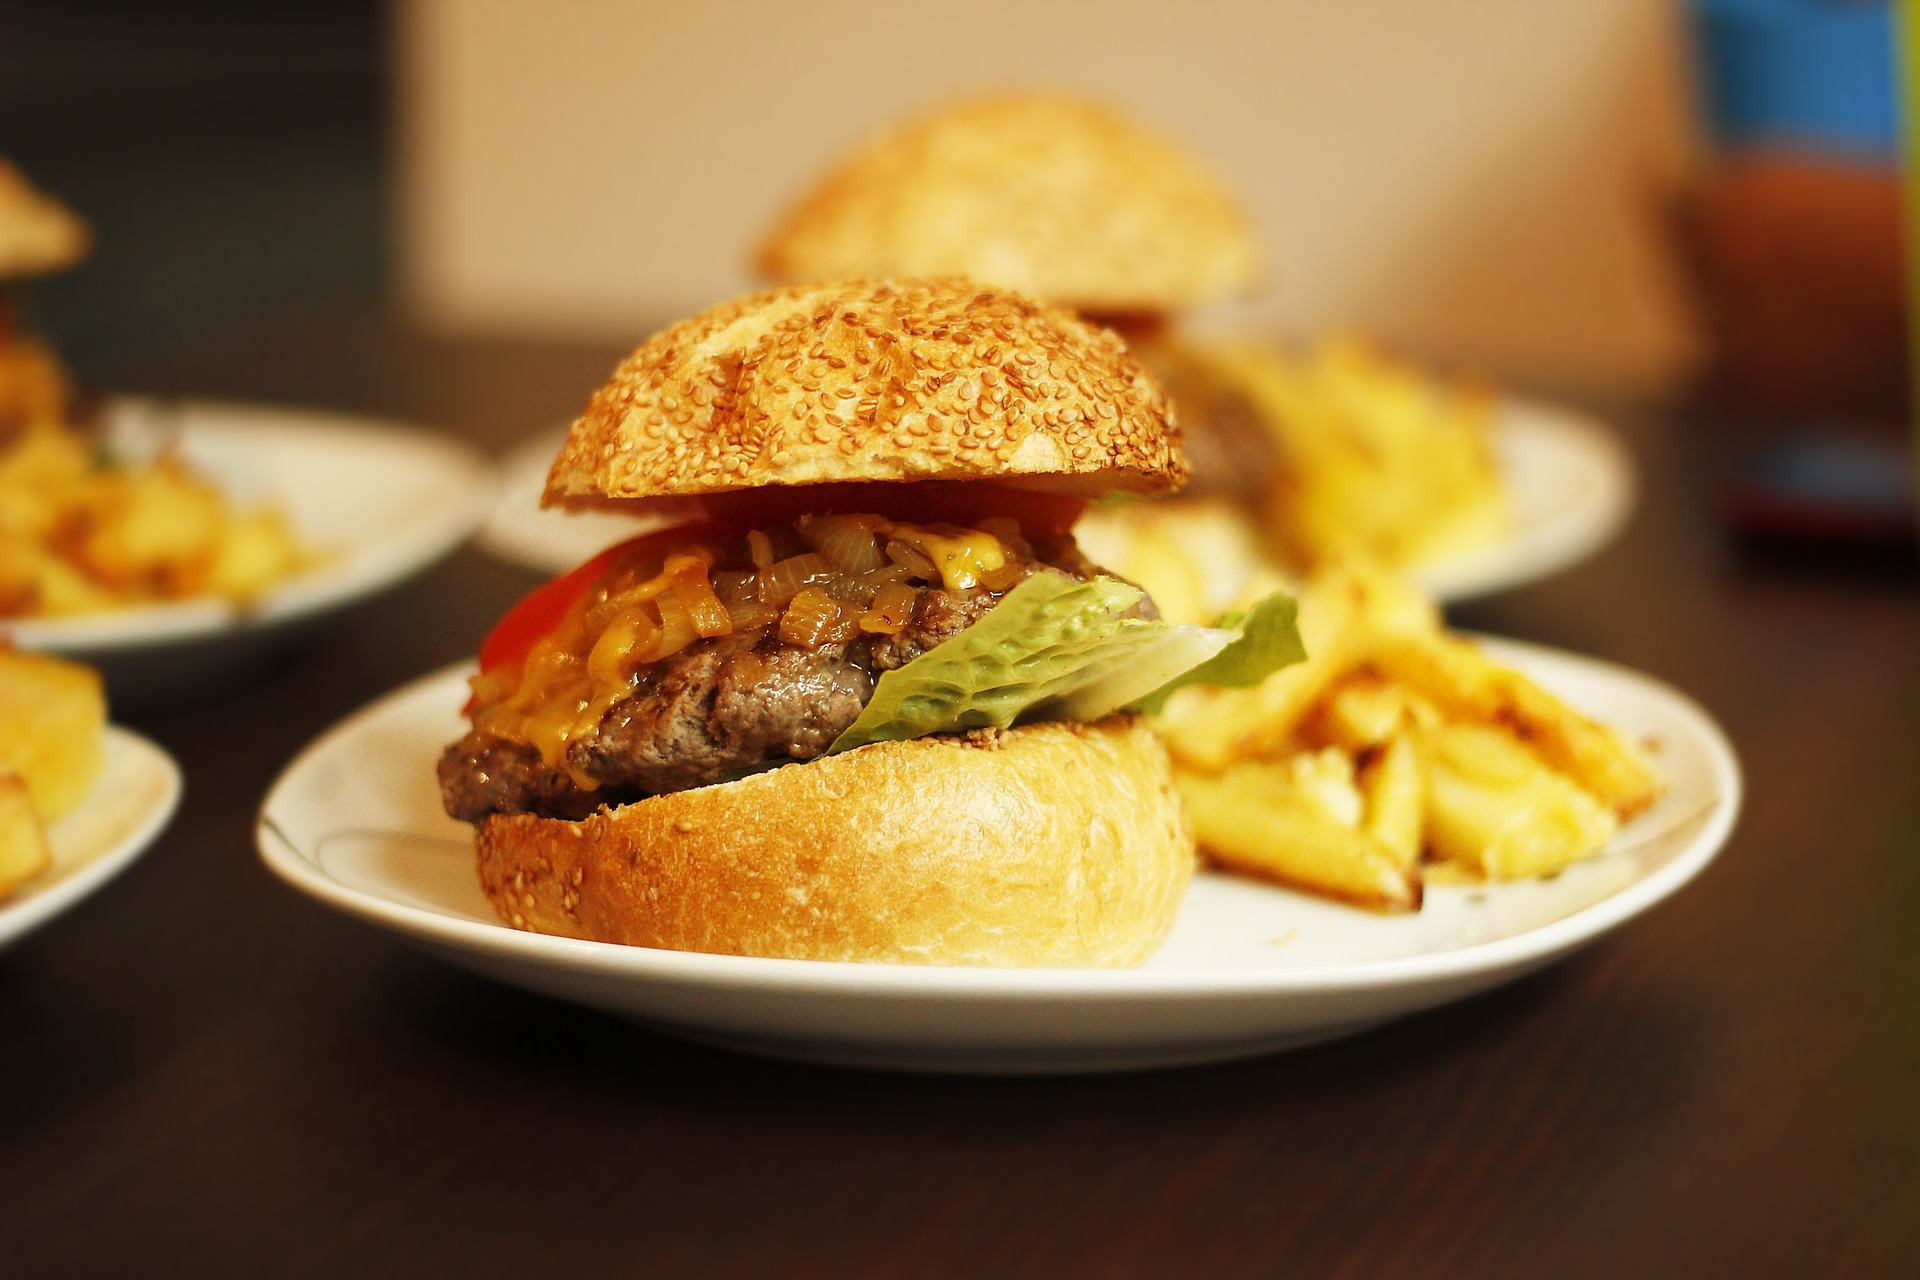 Are Hamburgers Unhealthy  Eating Unhealthy Foods Can Actually Make You Lose Weight